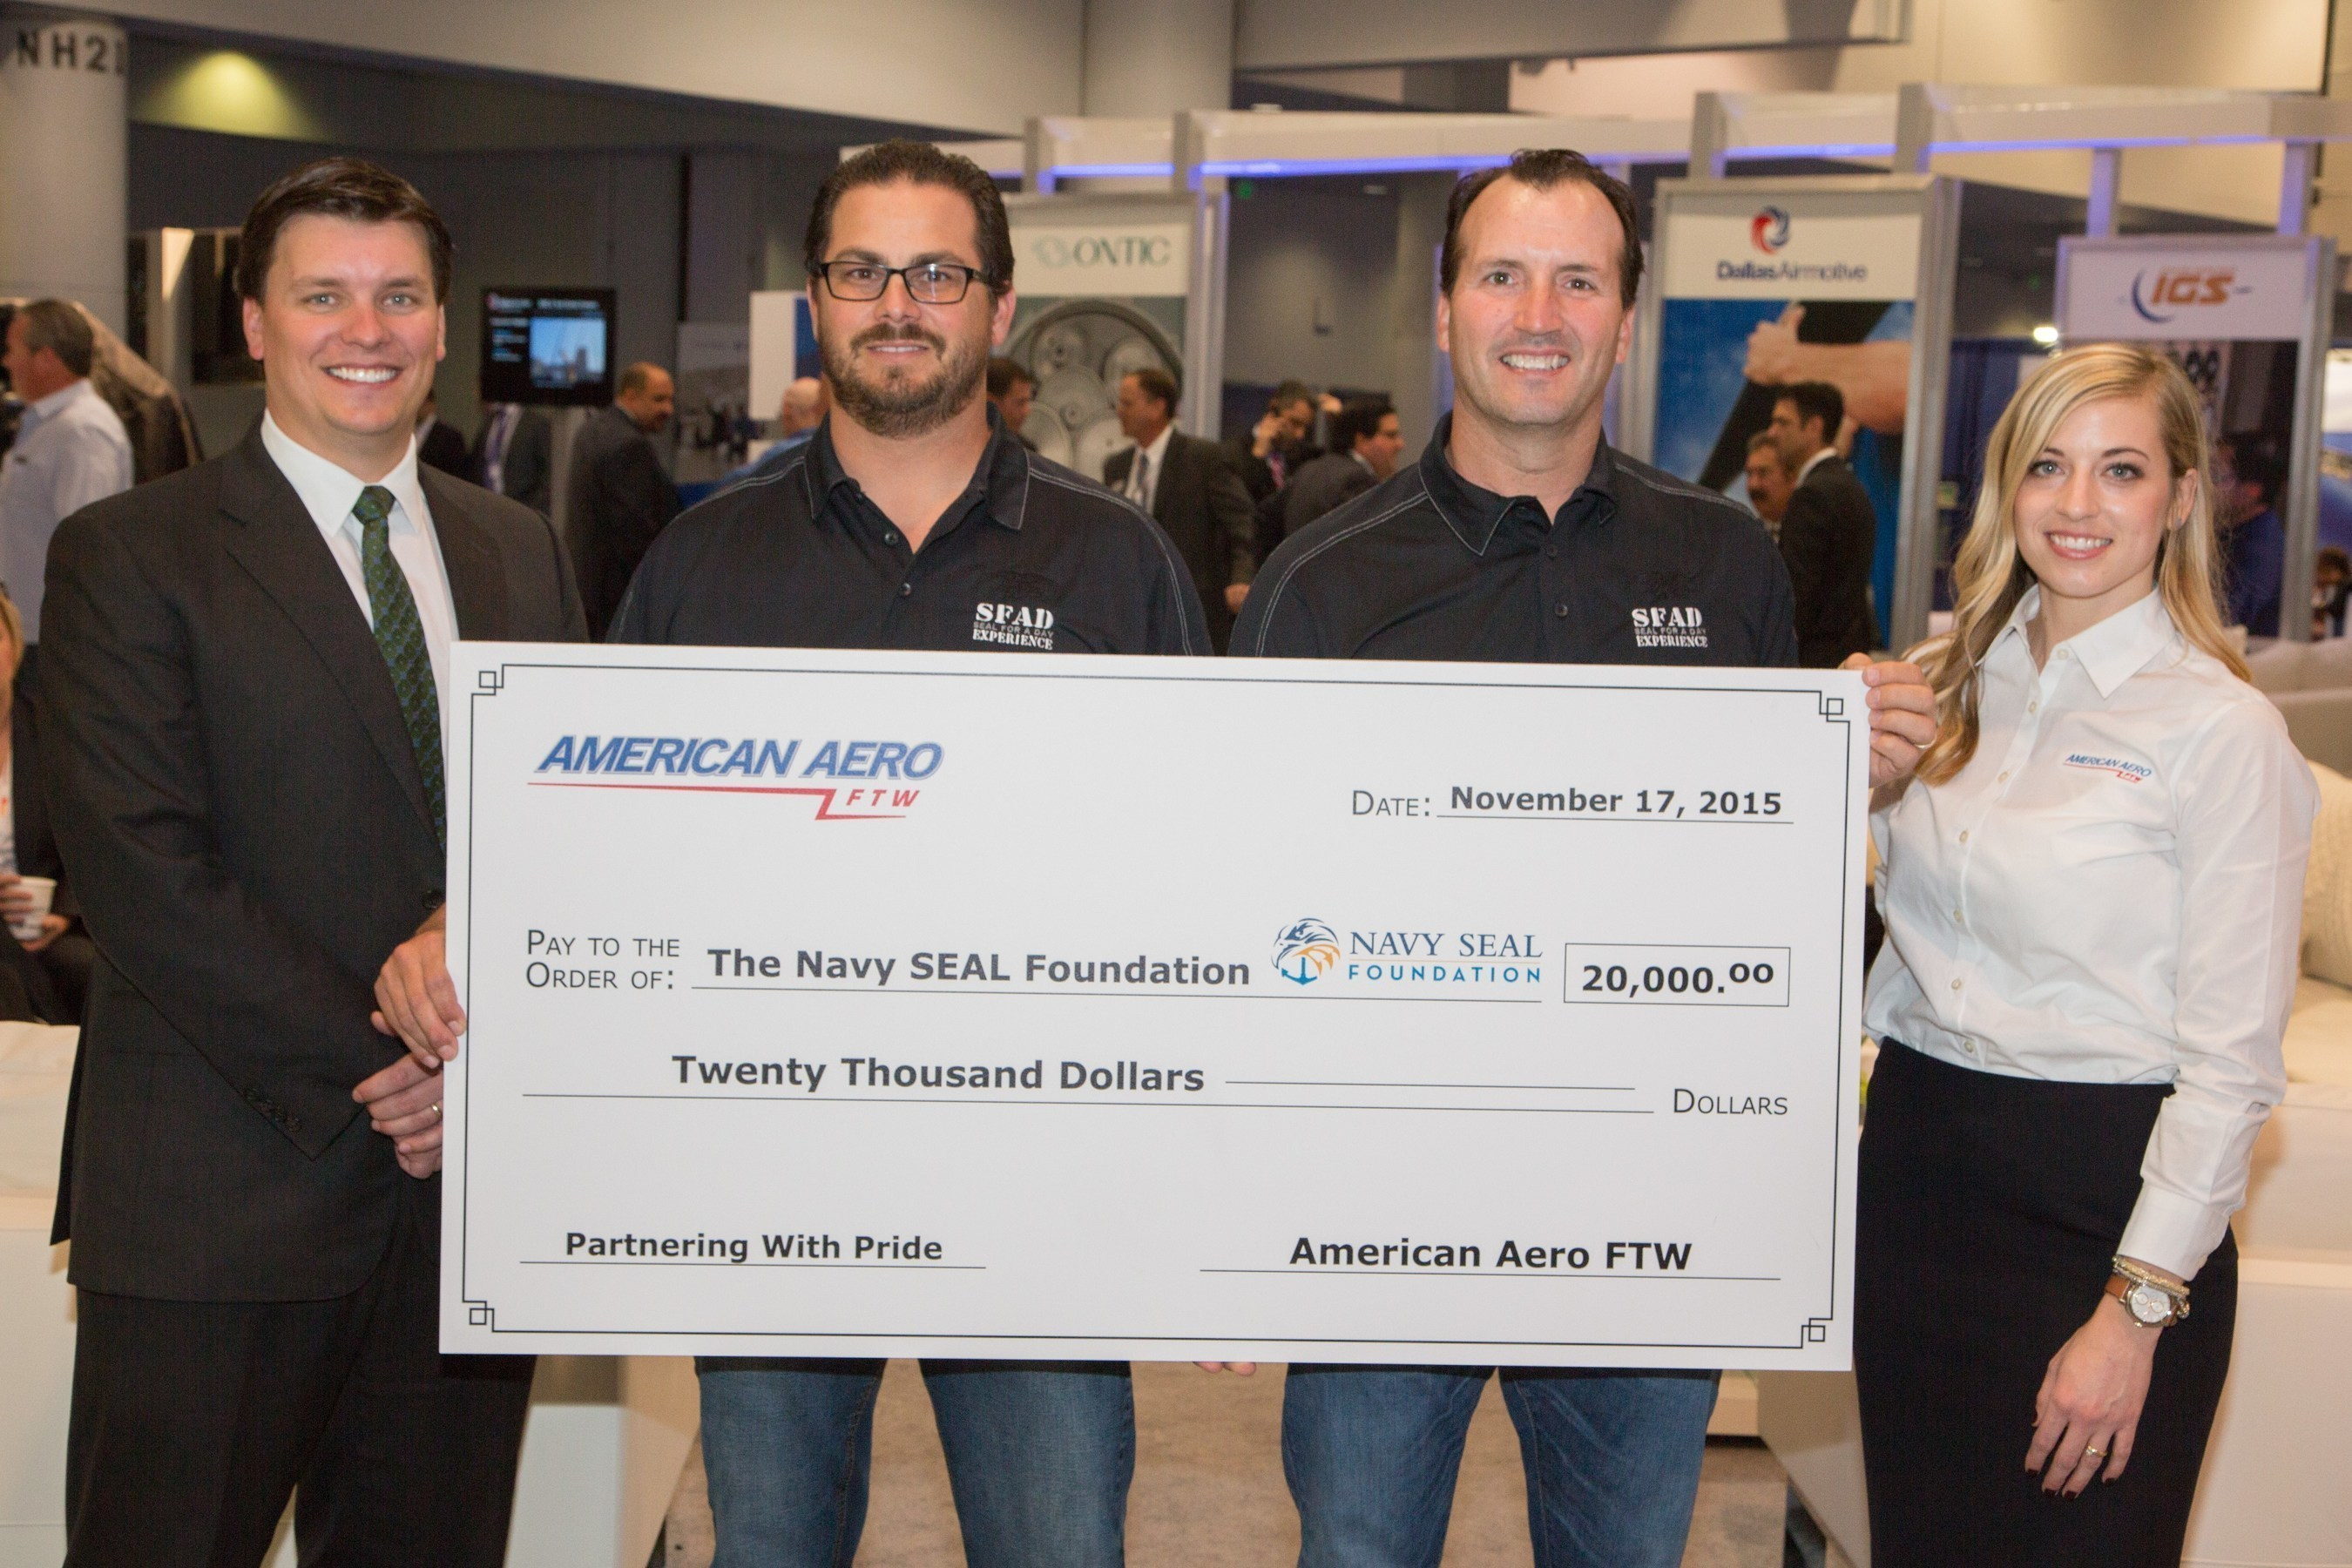 American Aero FTW Delivers $20,000 Donation To The Navy SEAL Foundation At NBAA 2015 Convention In